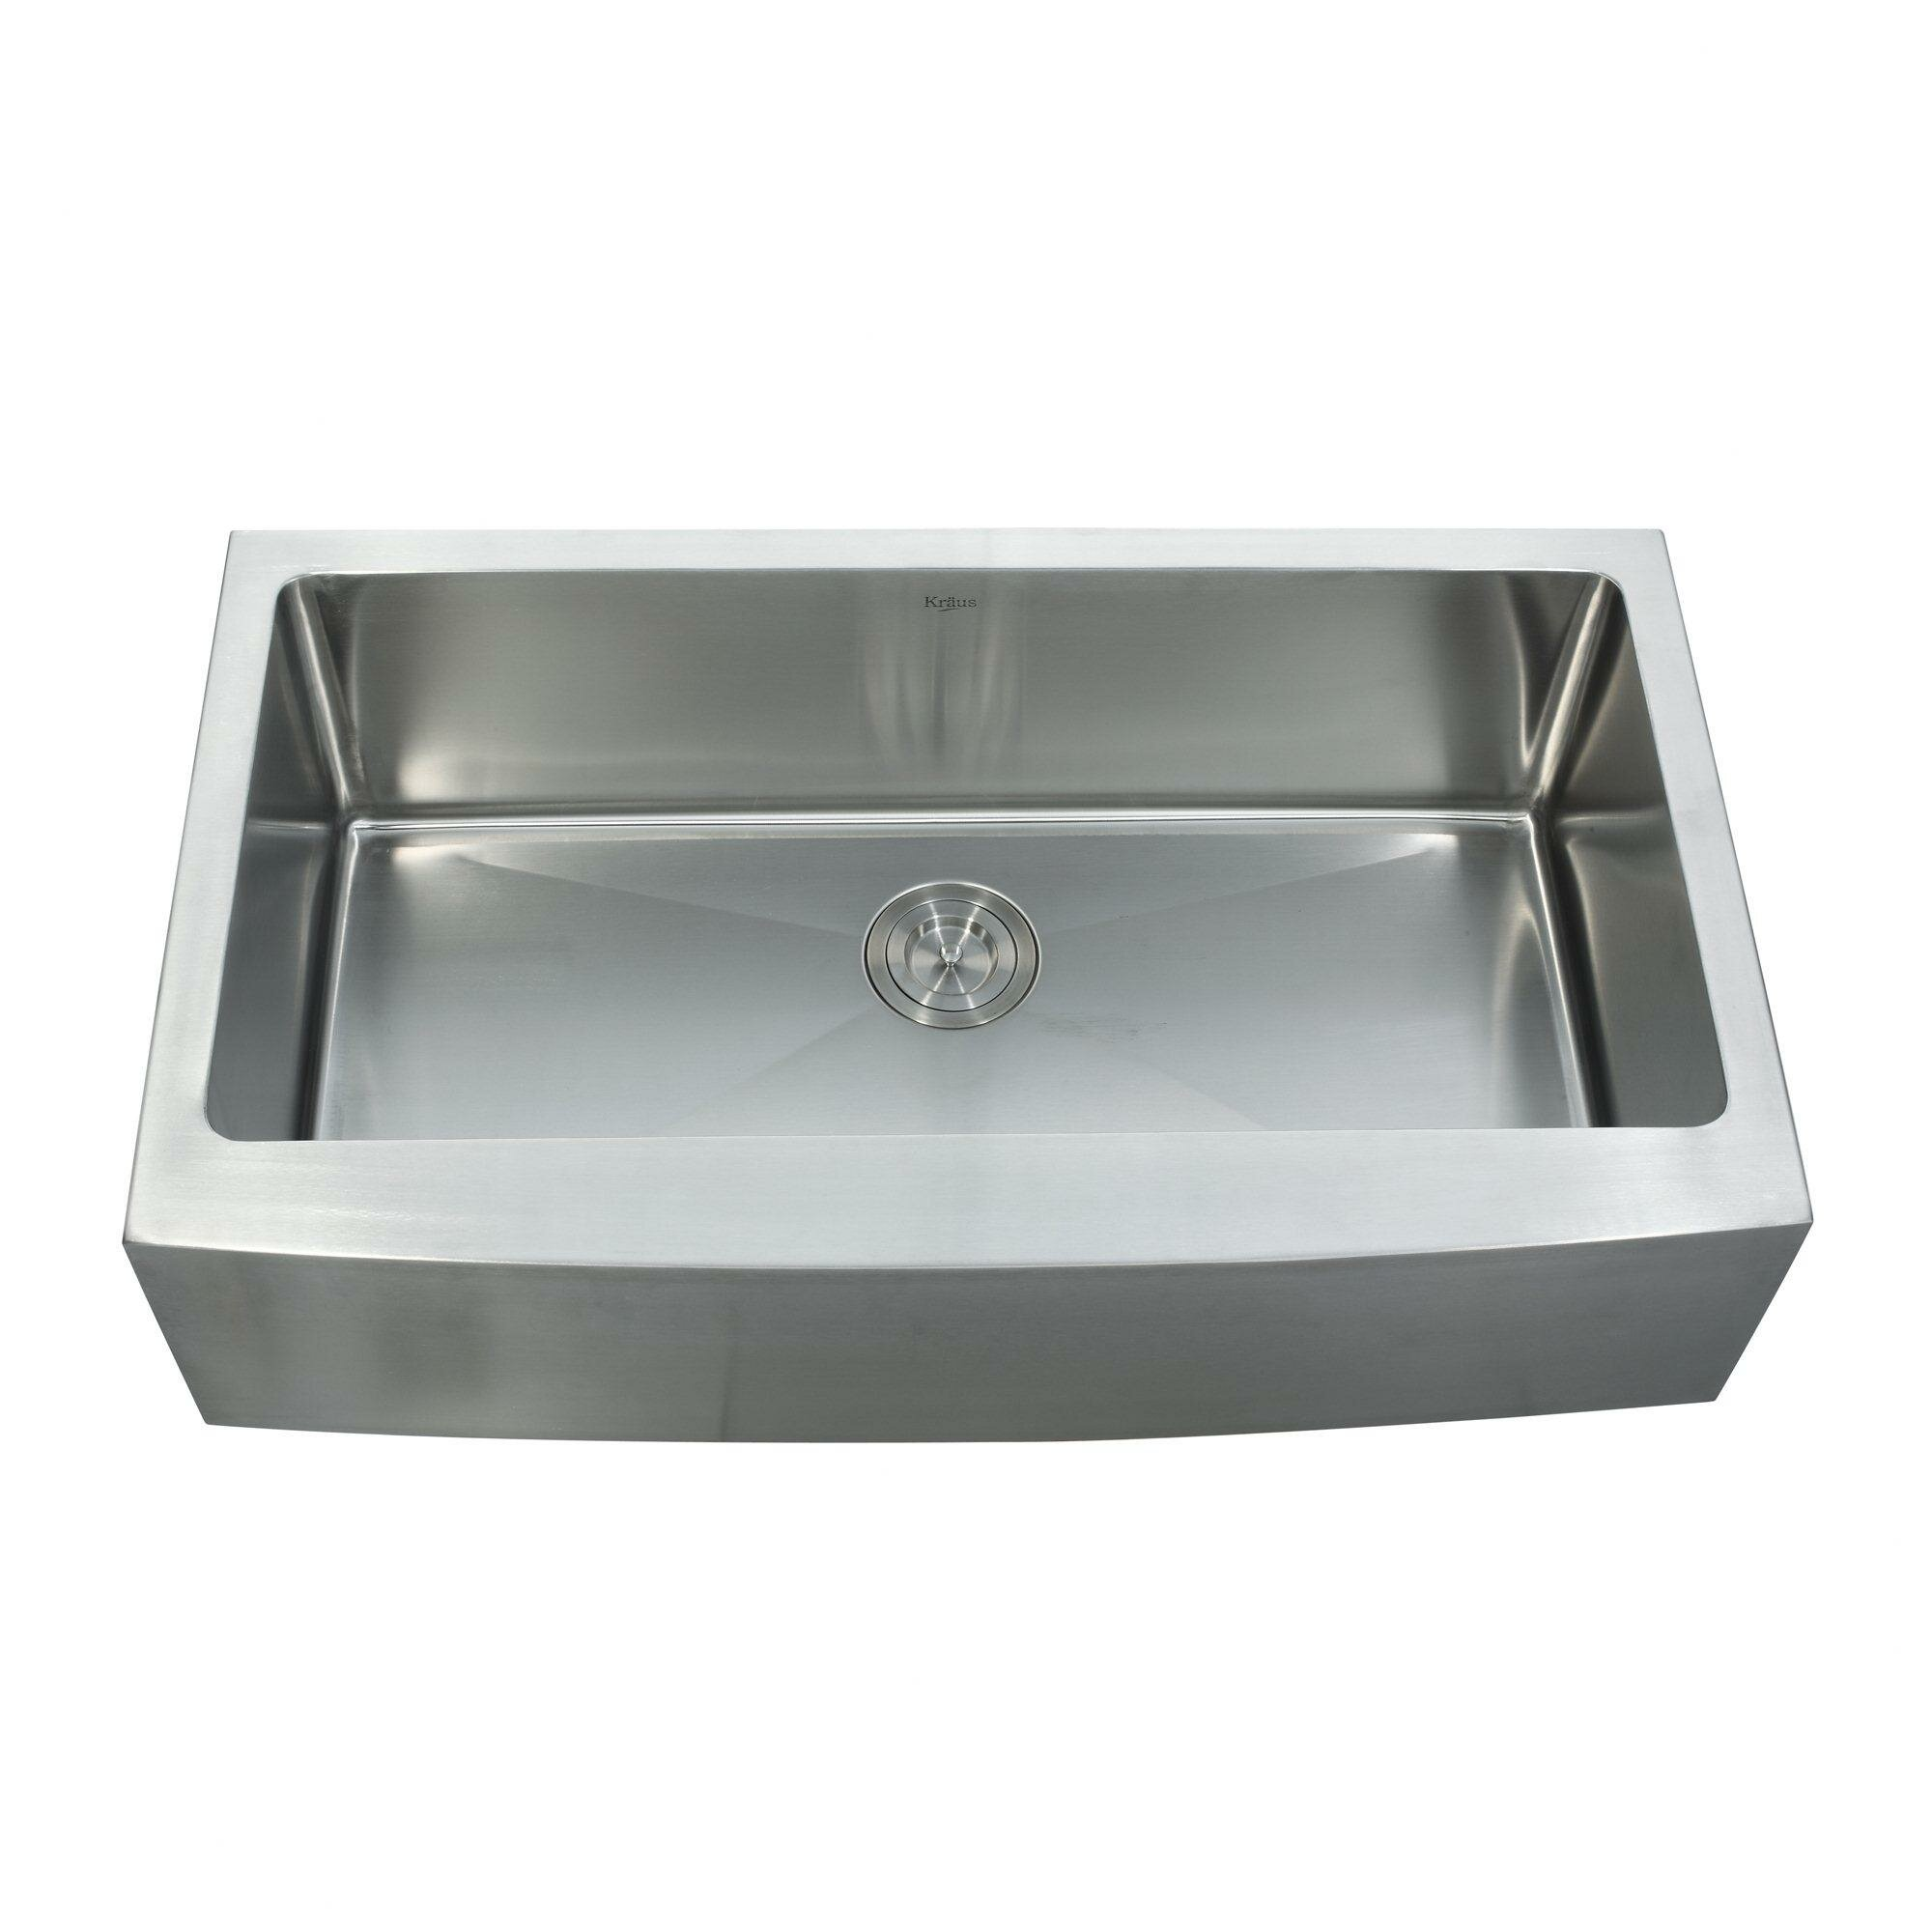 """Kraus Farmhouse 3588"""" X 2075"""" Kitchen Sink With Faucet. How To Install Soap Dispenser In Kitchen Sink. Commercial Kitchen Sink. Kitchen Sink Vent. Kitchen Sink Details. How To Unclog Kitchen Sink Disposal. Best Kitchen Sink. Kitchen Sinks Price. 10 Inch Deep Kitchen Sinks"""